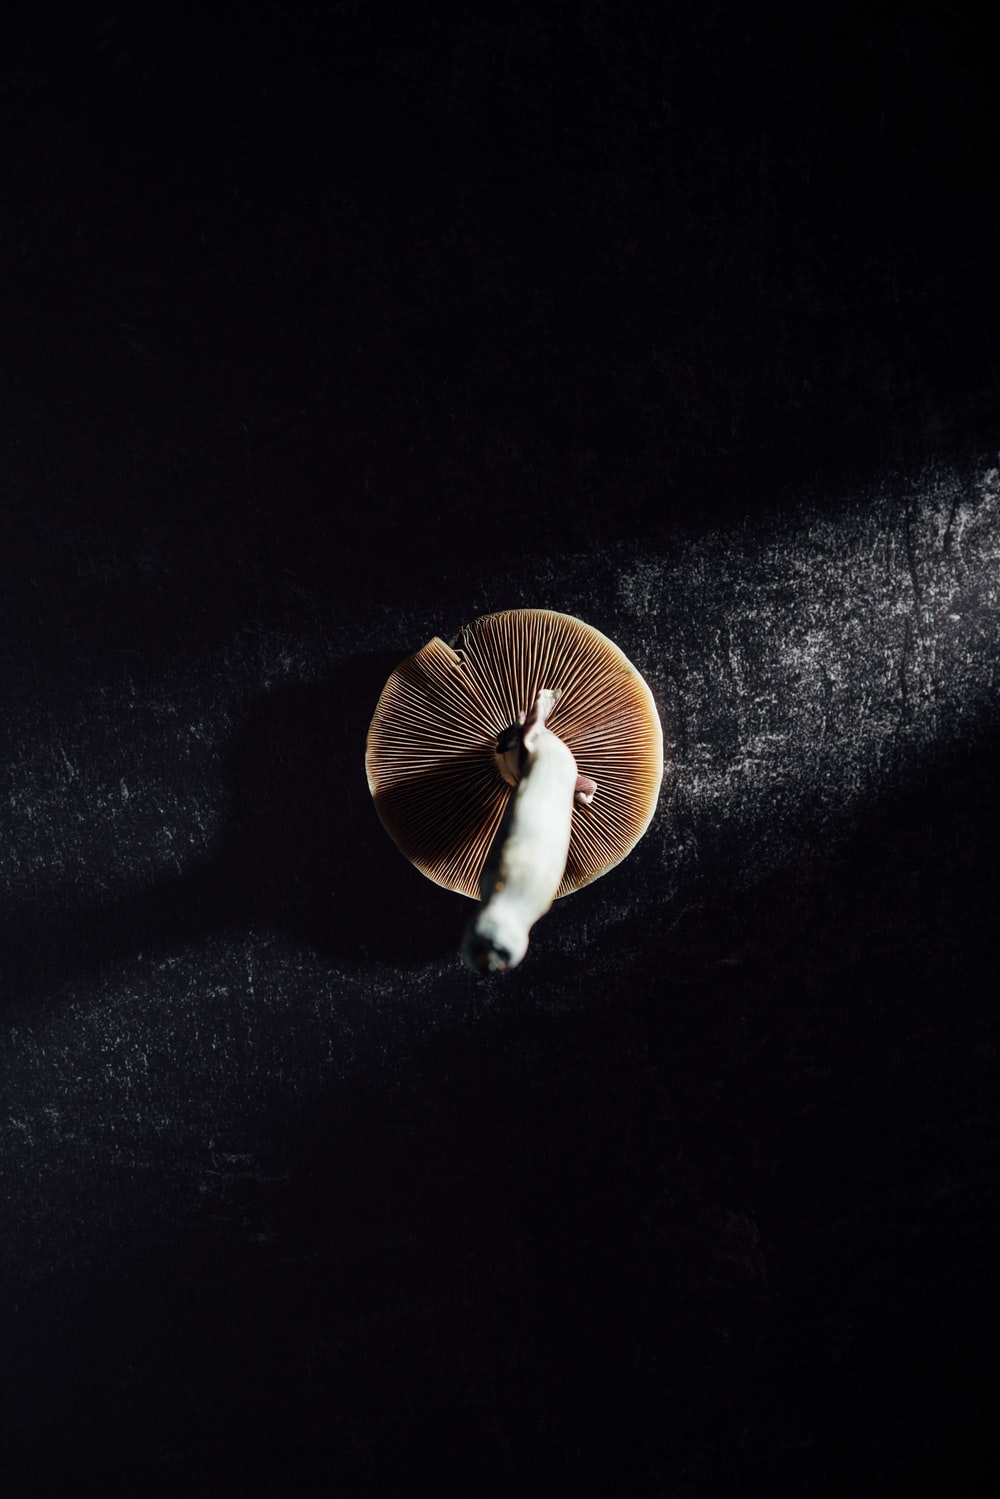 brown and white mushroom on black surface